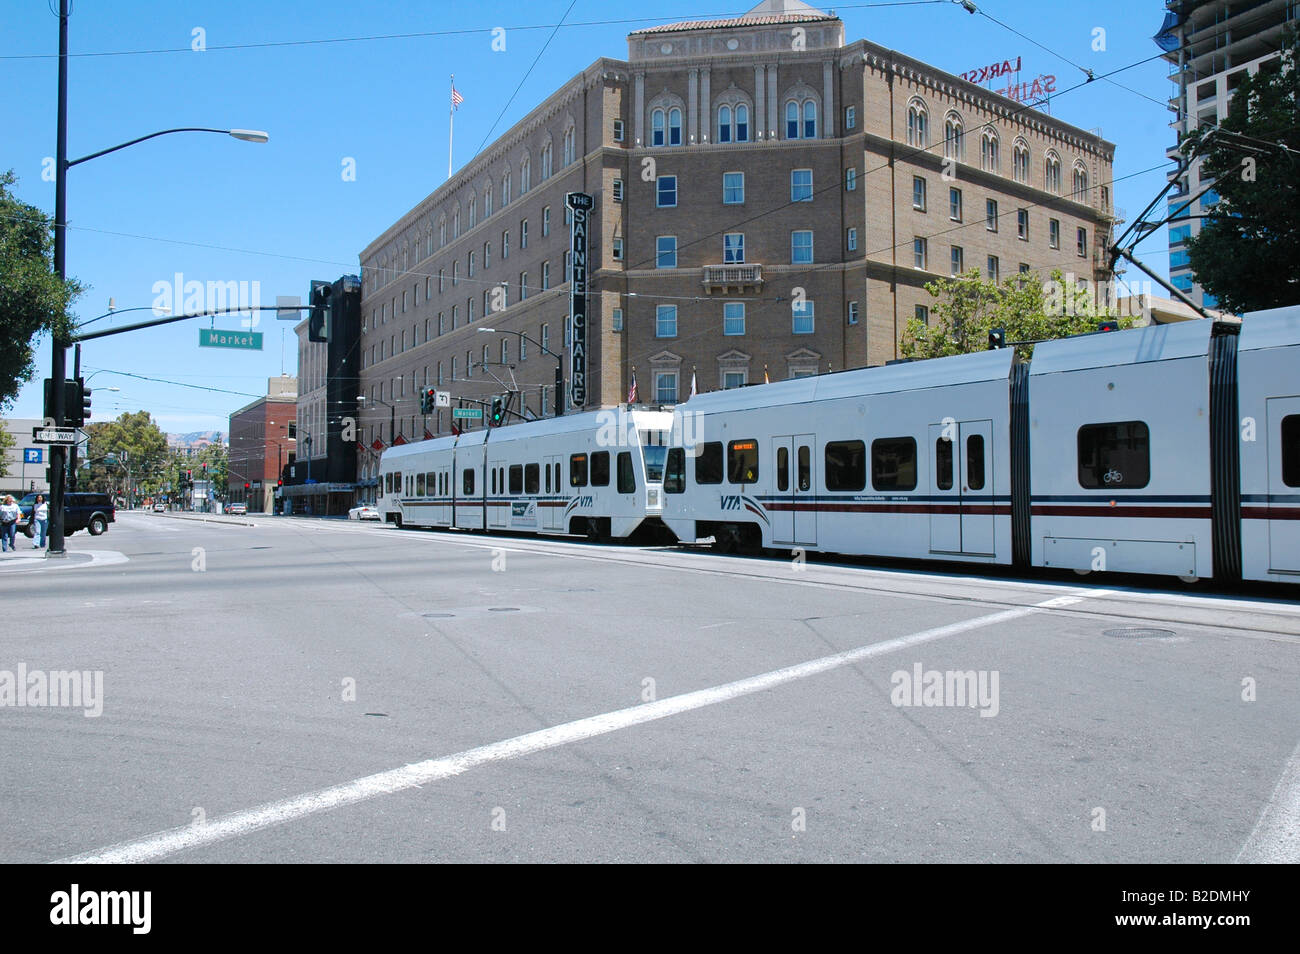 VTA {valley Transportation Authority} Lightrail Running Though Downtown San  Jose California By The Hotel Sainte Claire On Market